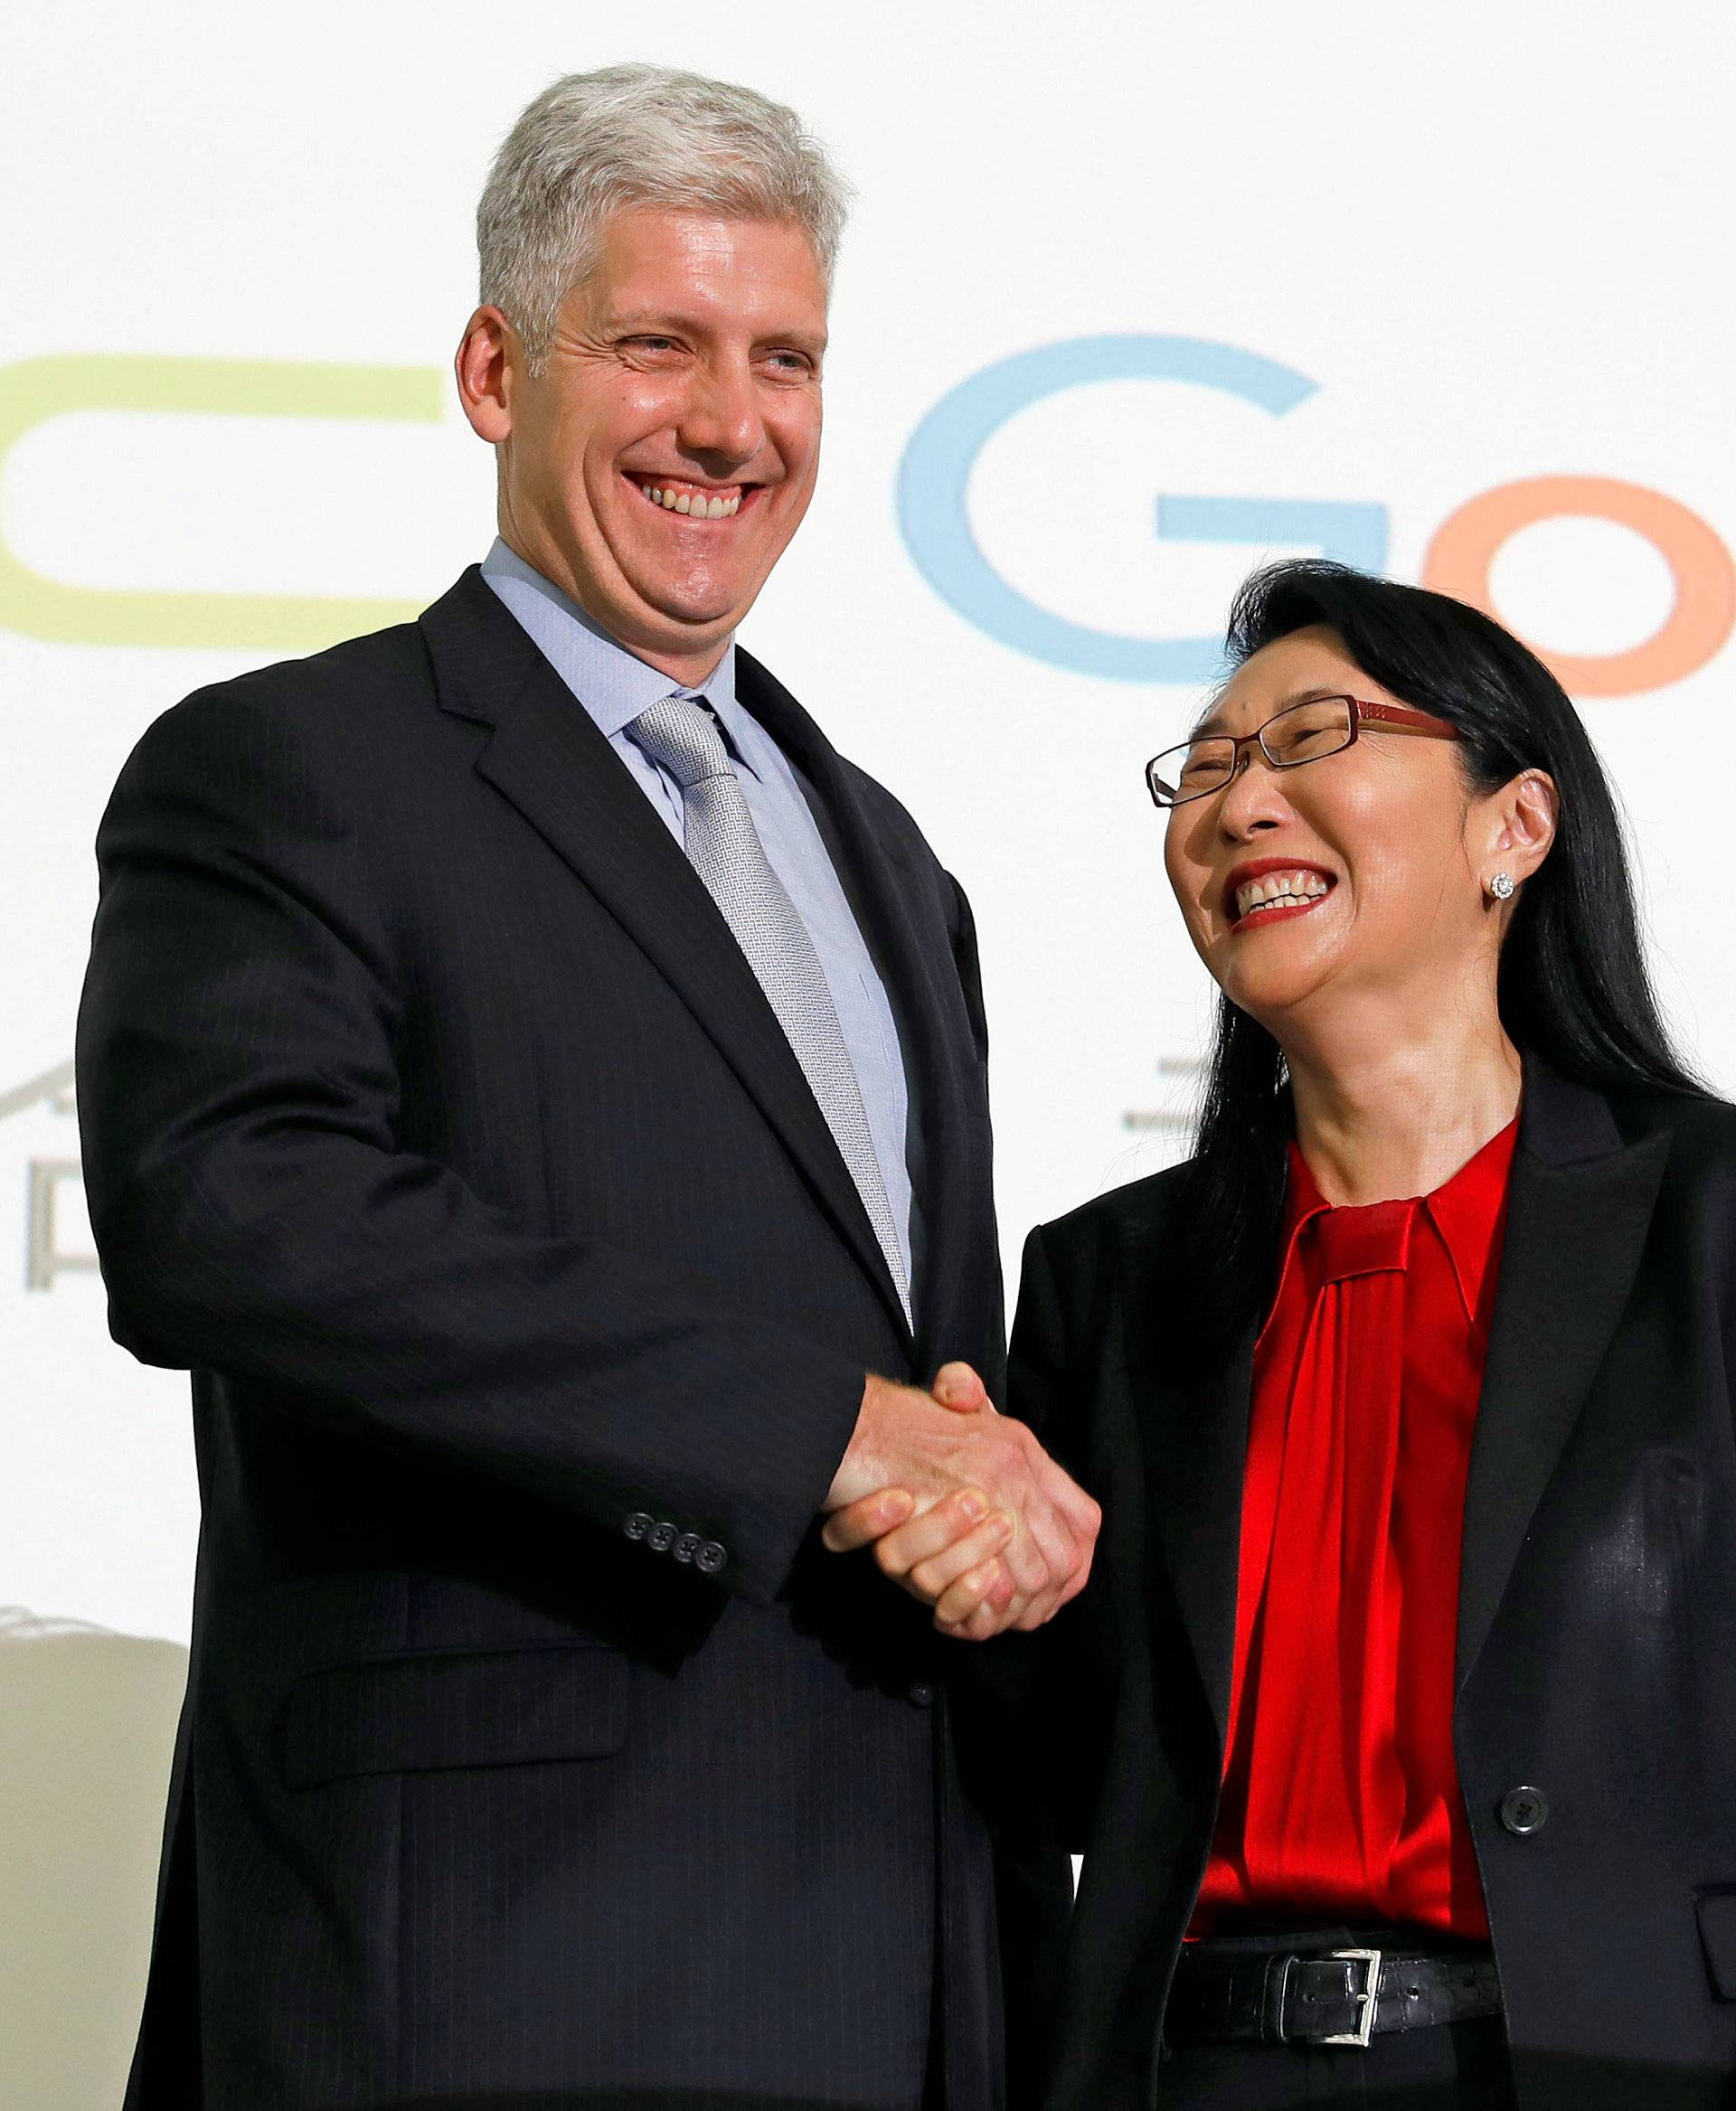 Google hardware executive Rick Osterloh shakes hand with HTC CEO Cher Wang during a news conference to announce Google to acquire HTC's Pixel smartphone division, in Taipei